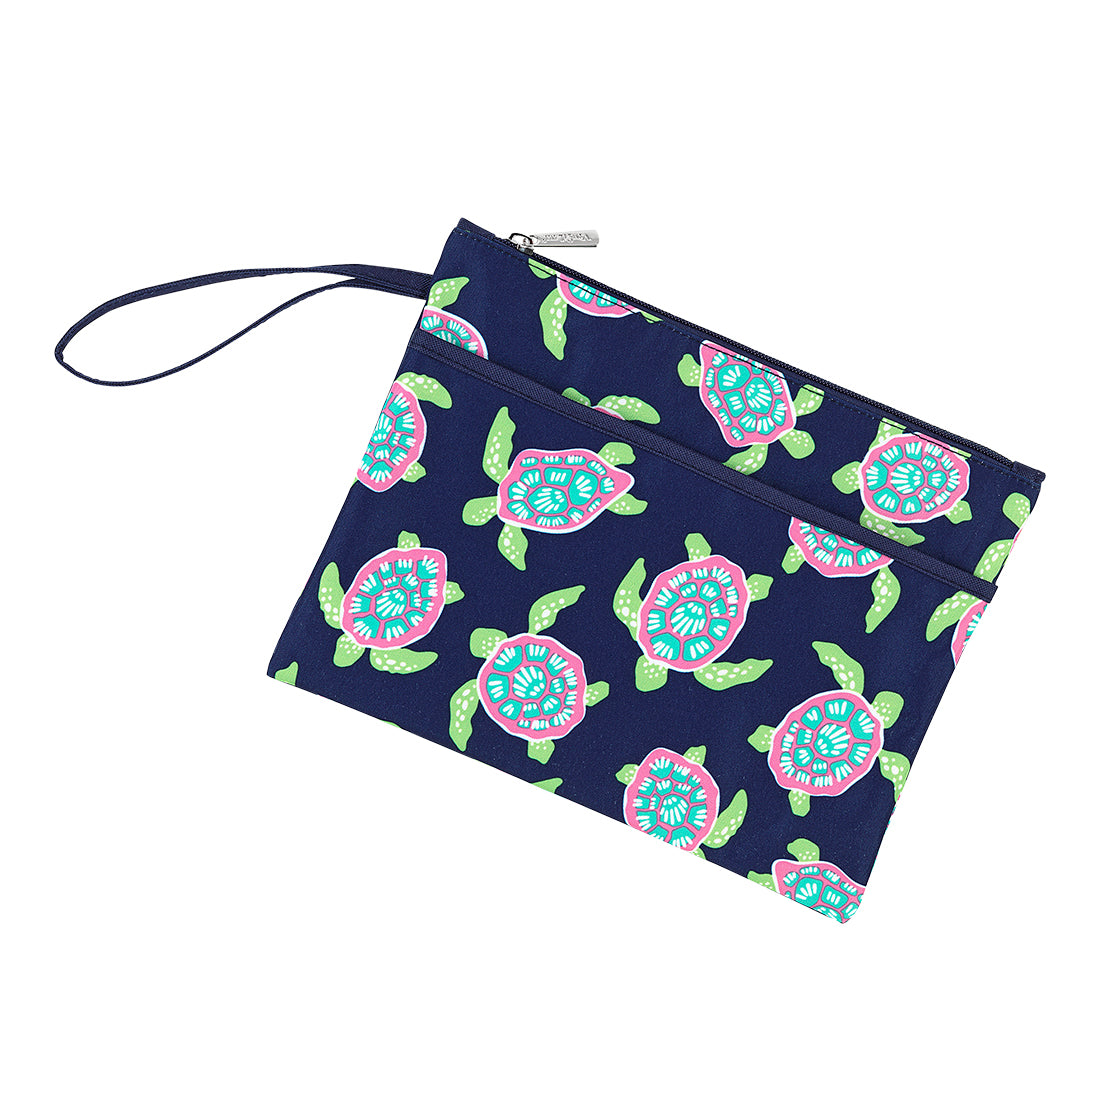 Personalized this Turtler Bay Zip Pouch Wristlet